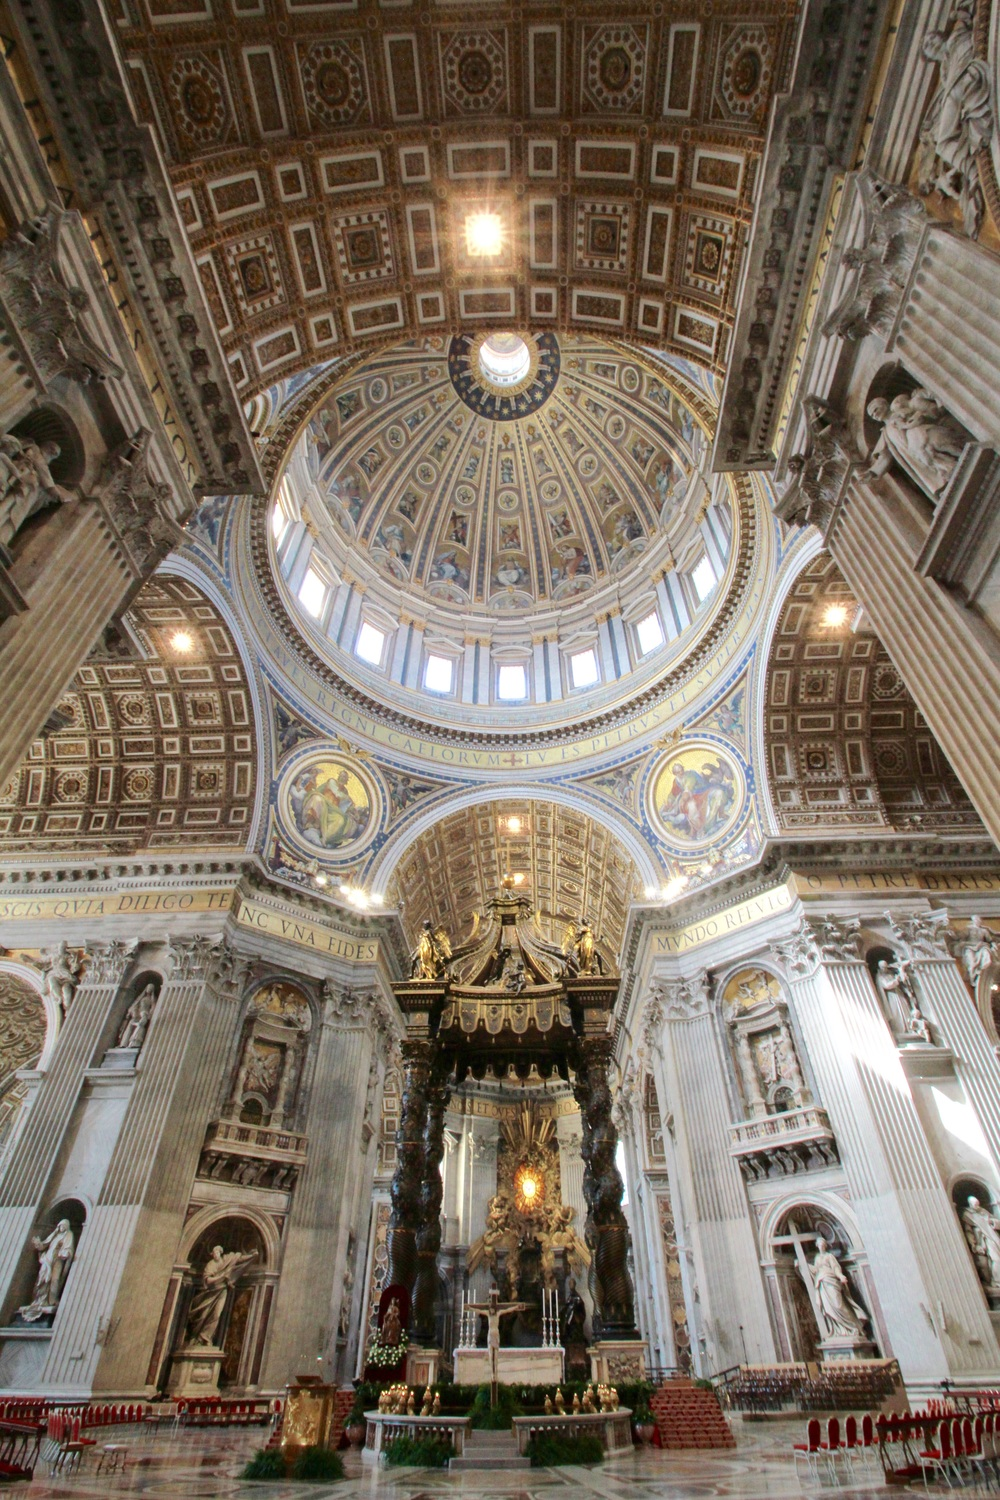 St. Peter's Basilica: Michelangelo designed the Great Crossing and the dome